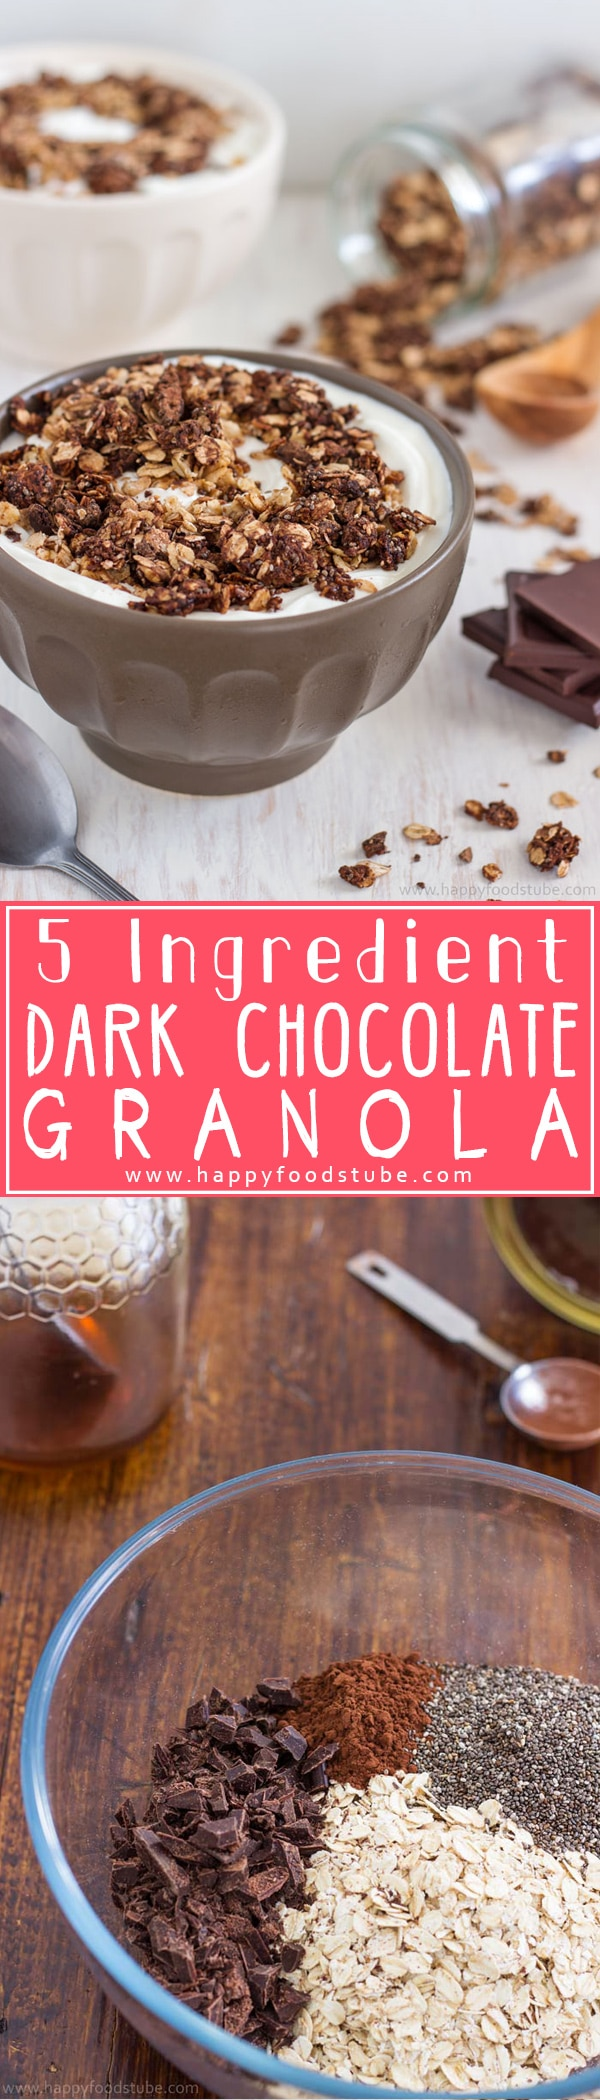 How to make Dark Chocolate Granola Recipe. This healthy breakfast or snack is also gluten free & nut free!   happyfoodstube.com